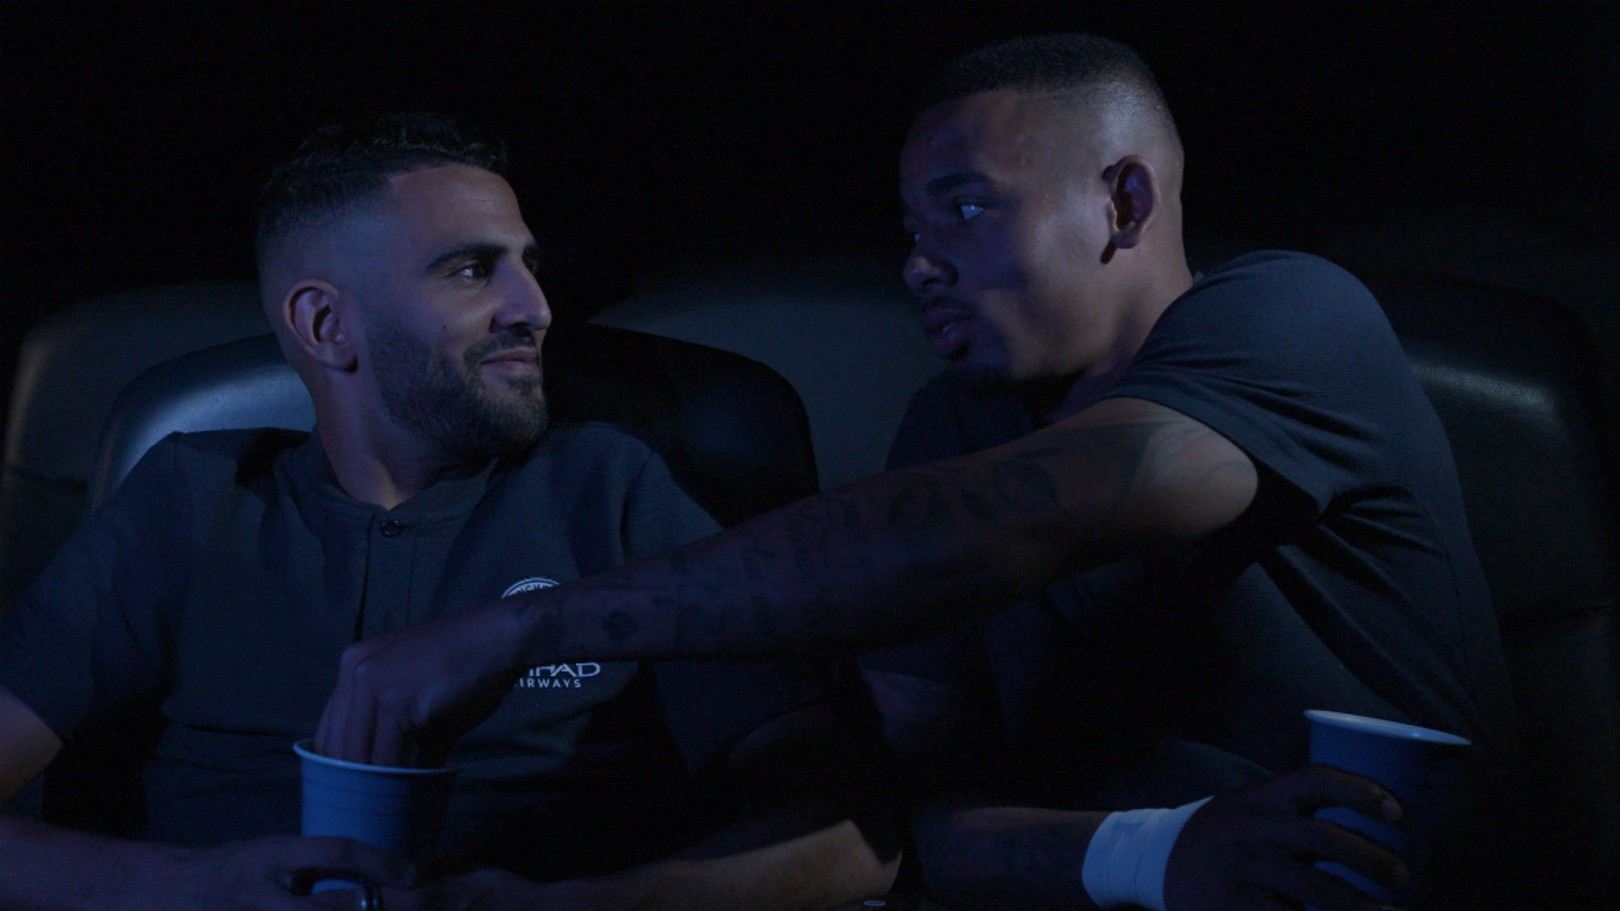 FOURMIDABLES: Manchester City has launched Man City for TV, a new OTT streaming platform which is now available to download worldwide.